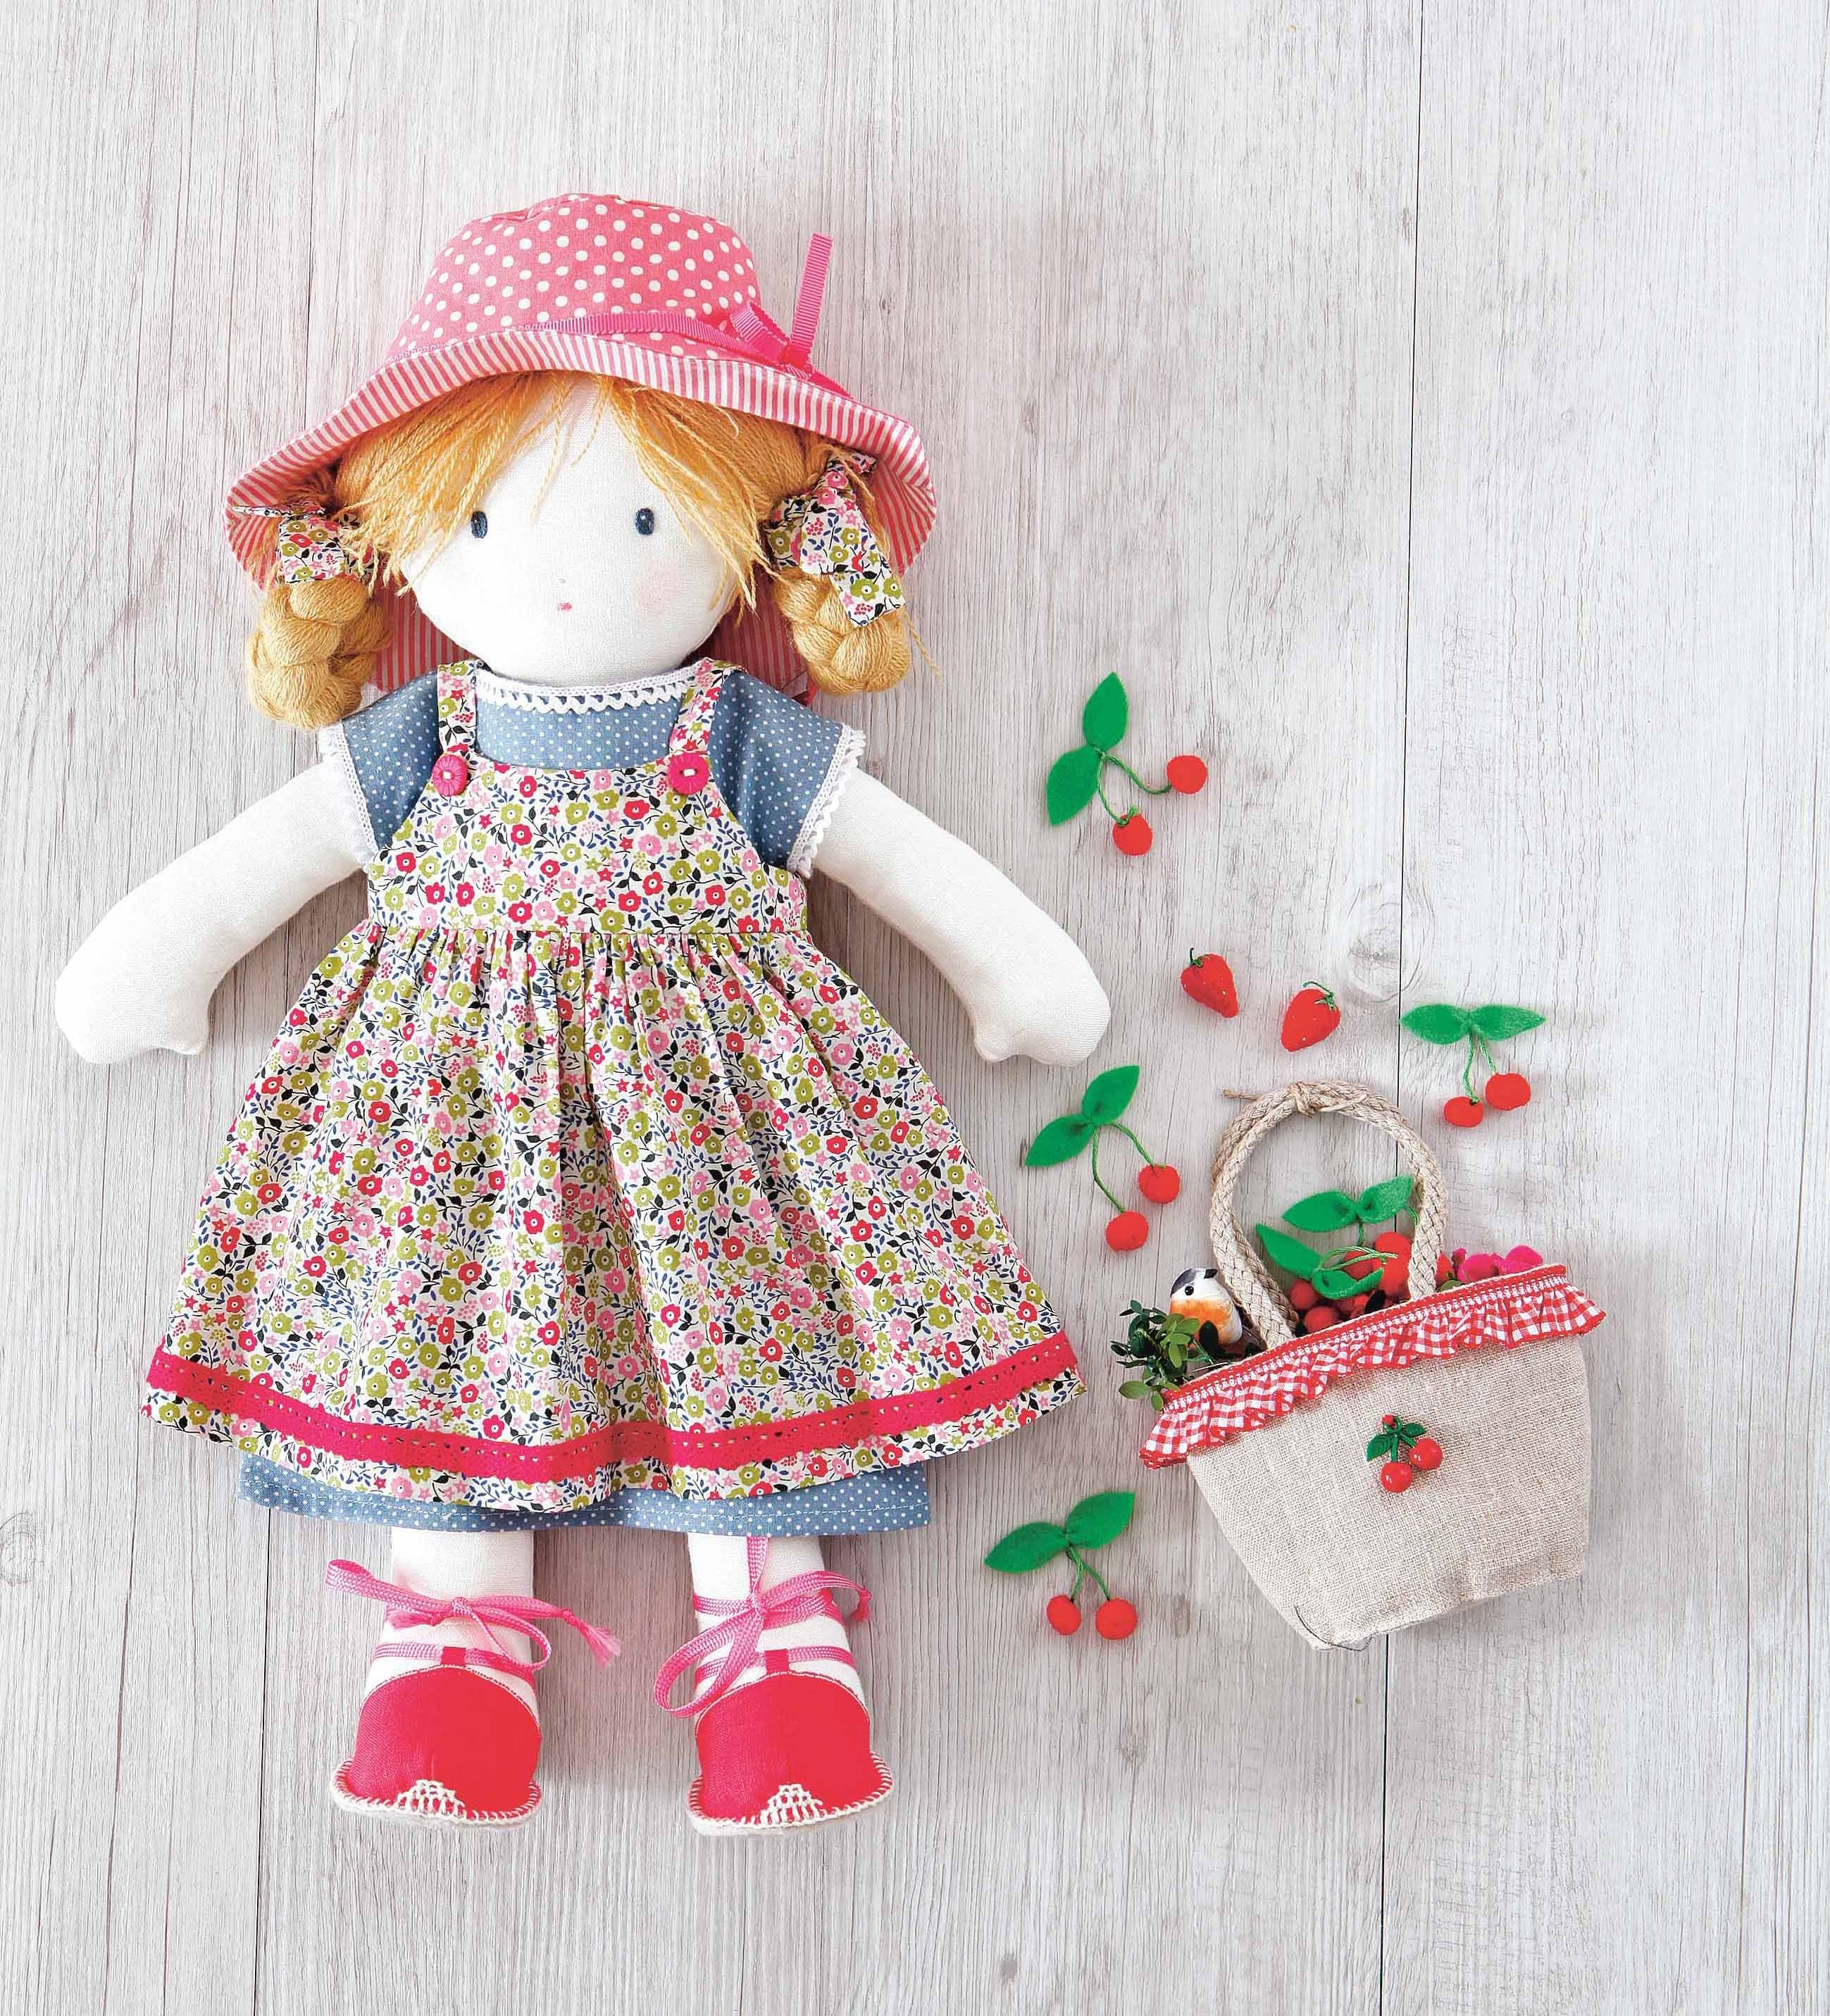 Pattern: Printable Rag Doll Sewing Pattern | Sewing | Doll Sewing - Free Printable Cloth Doll Sewing Patterns